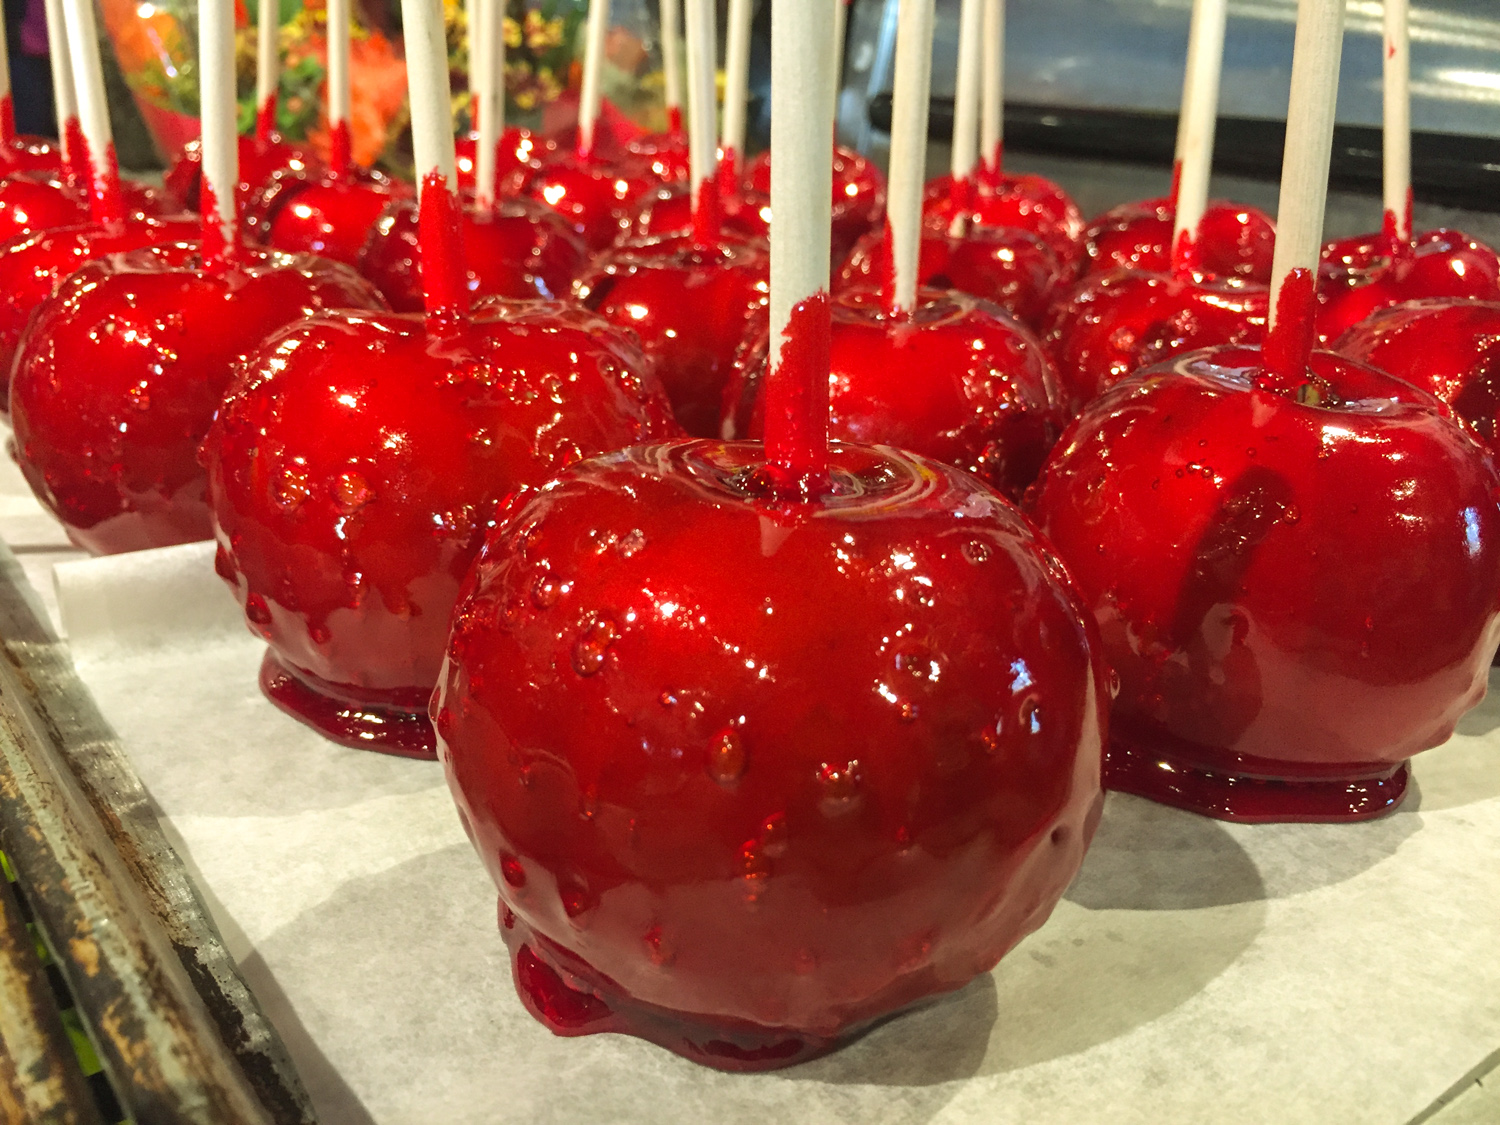 I saw these freshly made candy apples just waiting to be wrapped at  Country Produce  in Orillia.  This is the time of year to go apple picking and Ontario apples are just ripe for picking and eating.  For a list of where to find local visit  Harvest Ontario , Ontario's largest directory of agritourism attractions.    Support local and buy Ontario apples and let's celebrate the season!